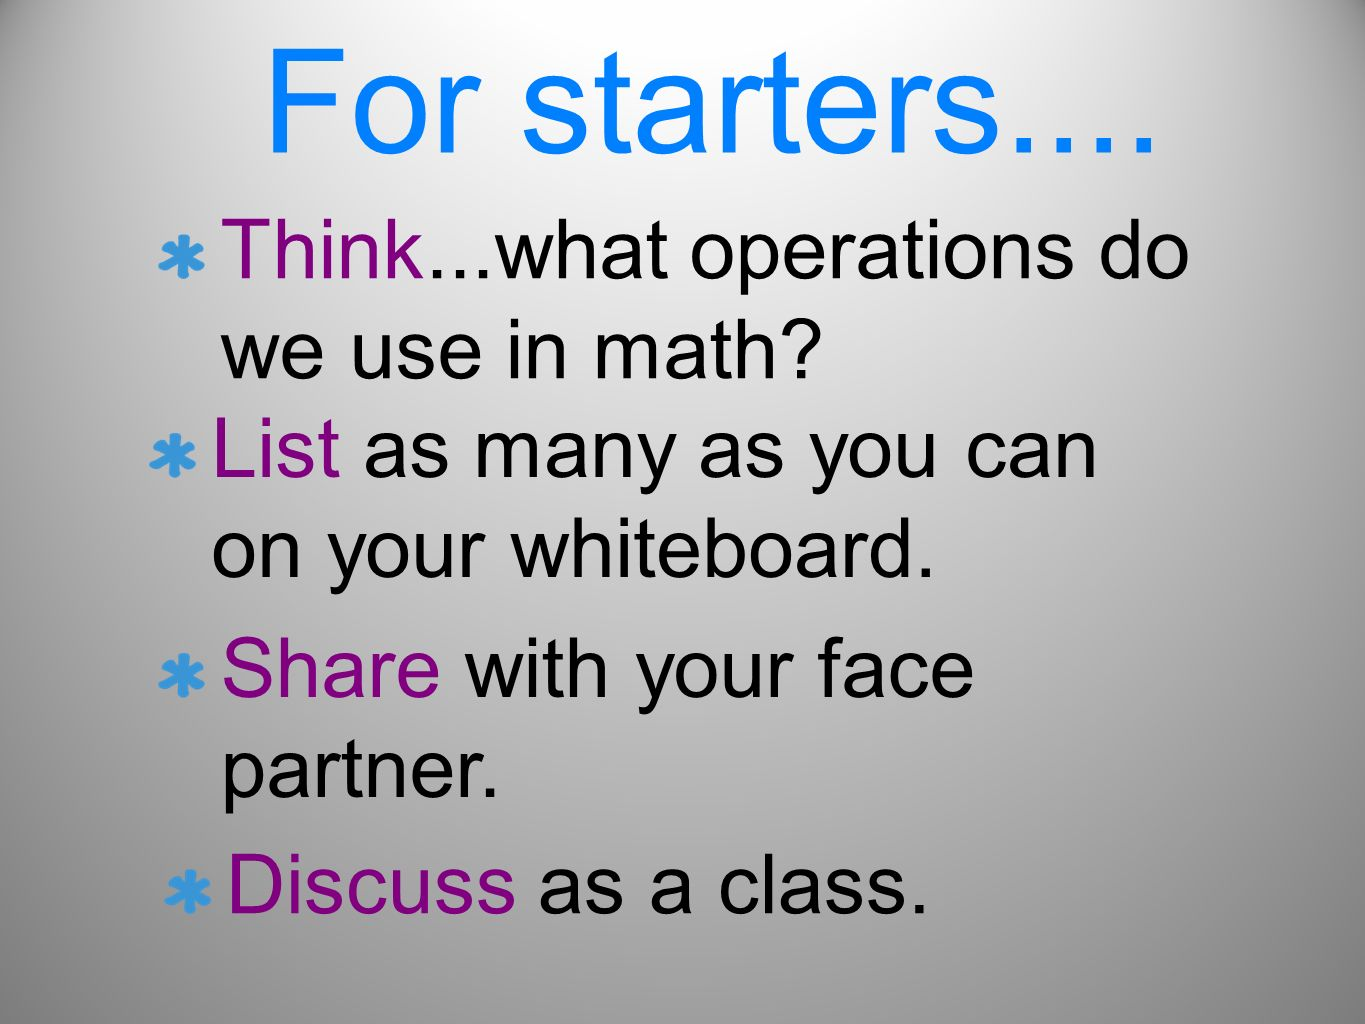 For starters.... Think...what operations do we use in math